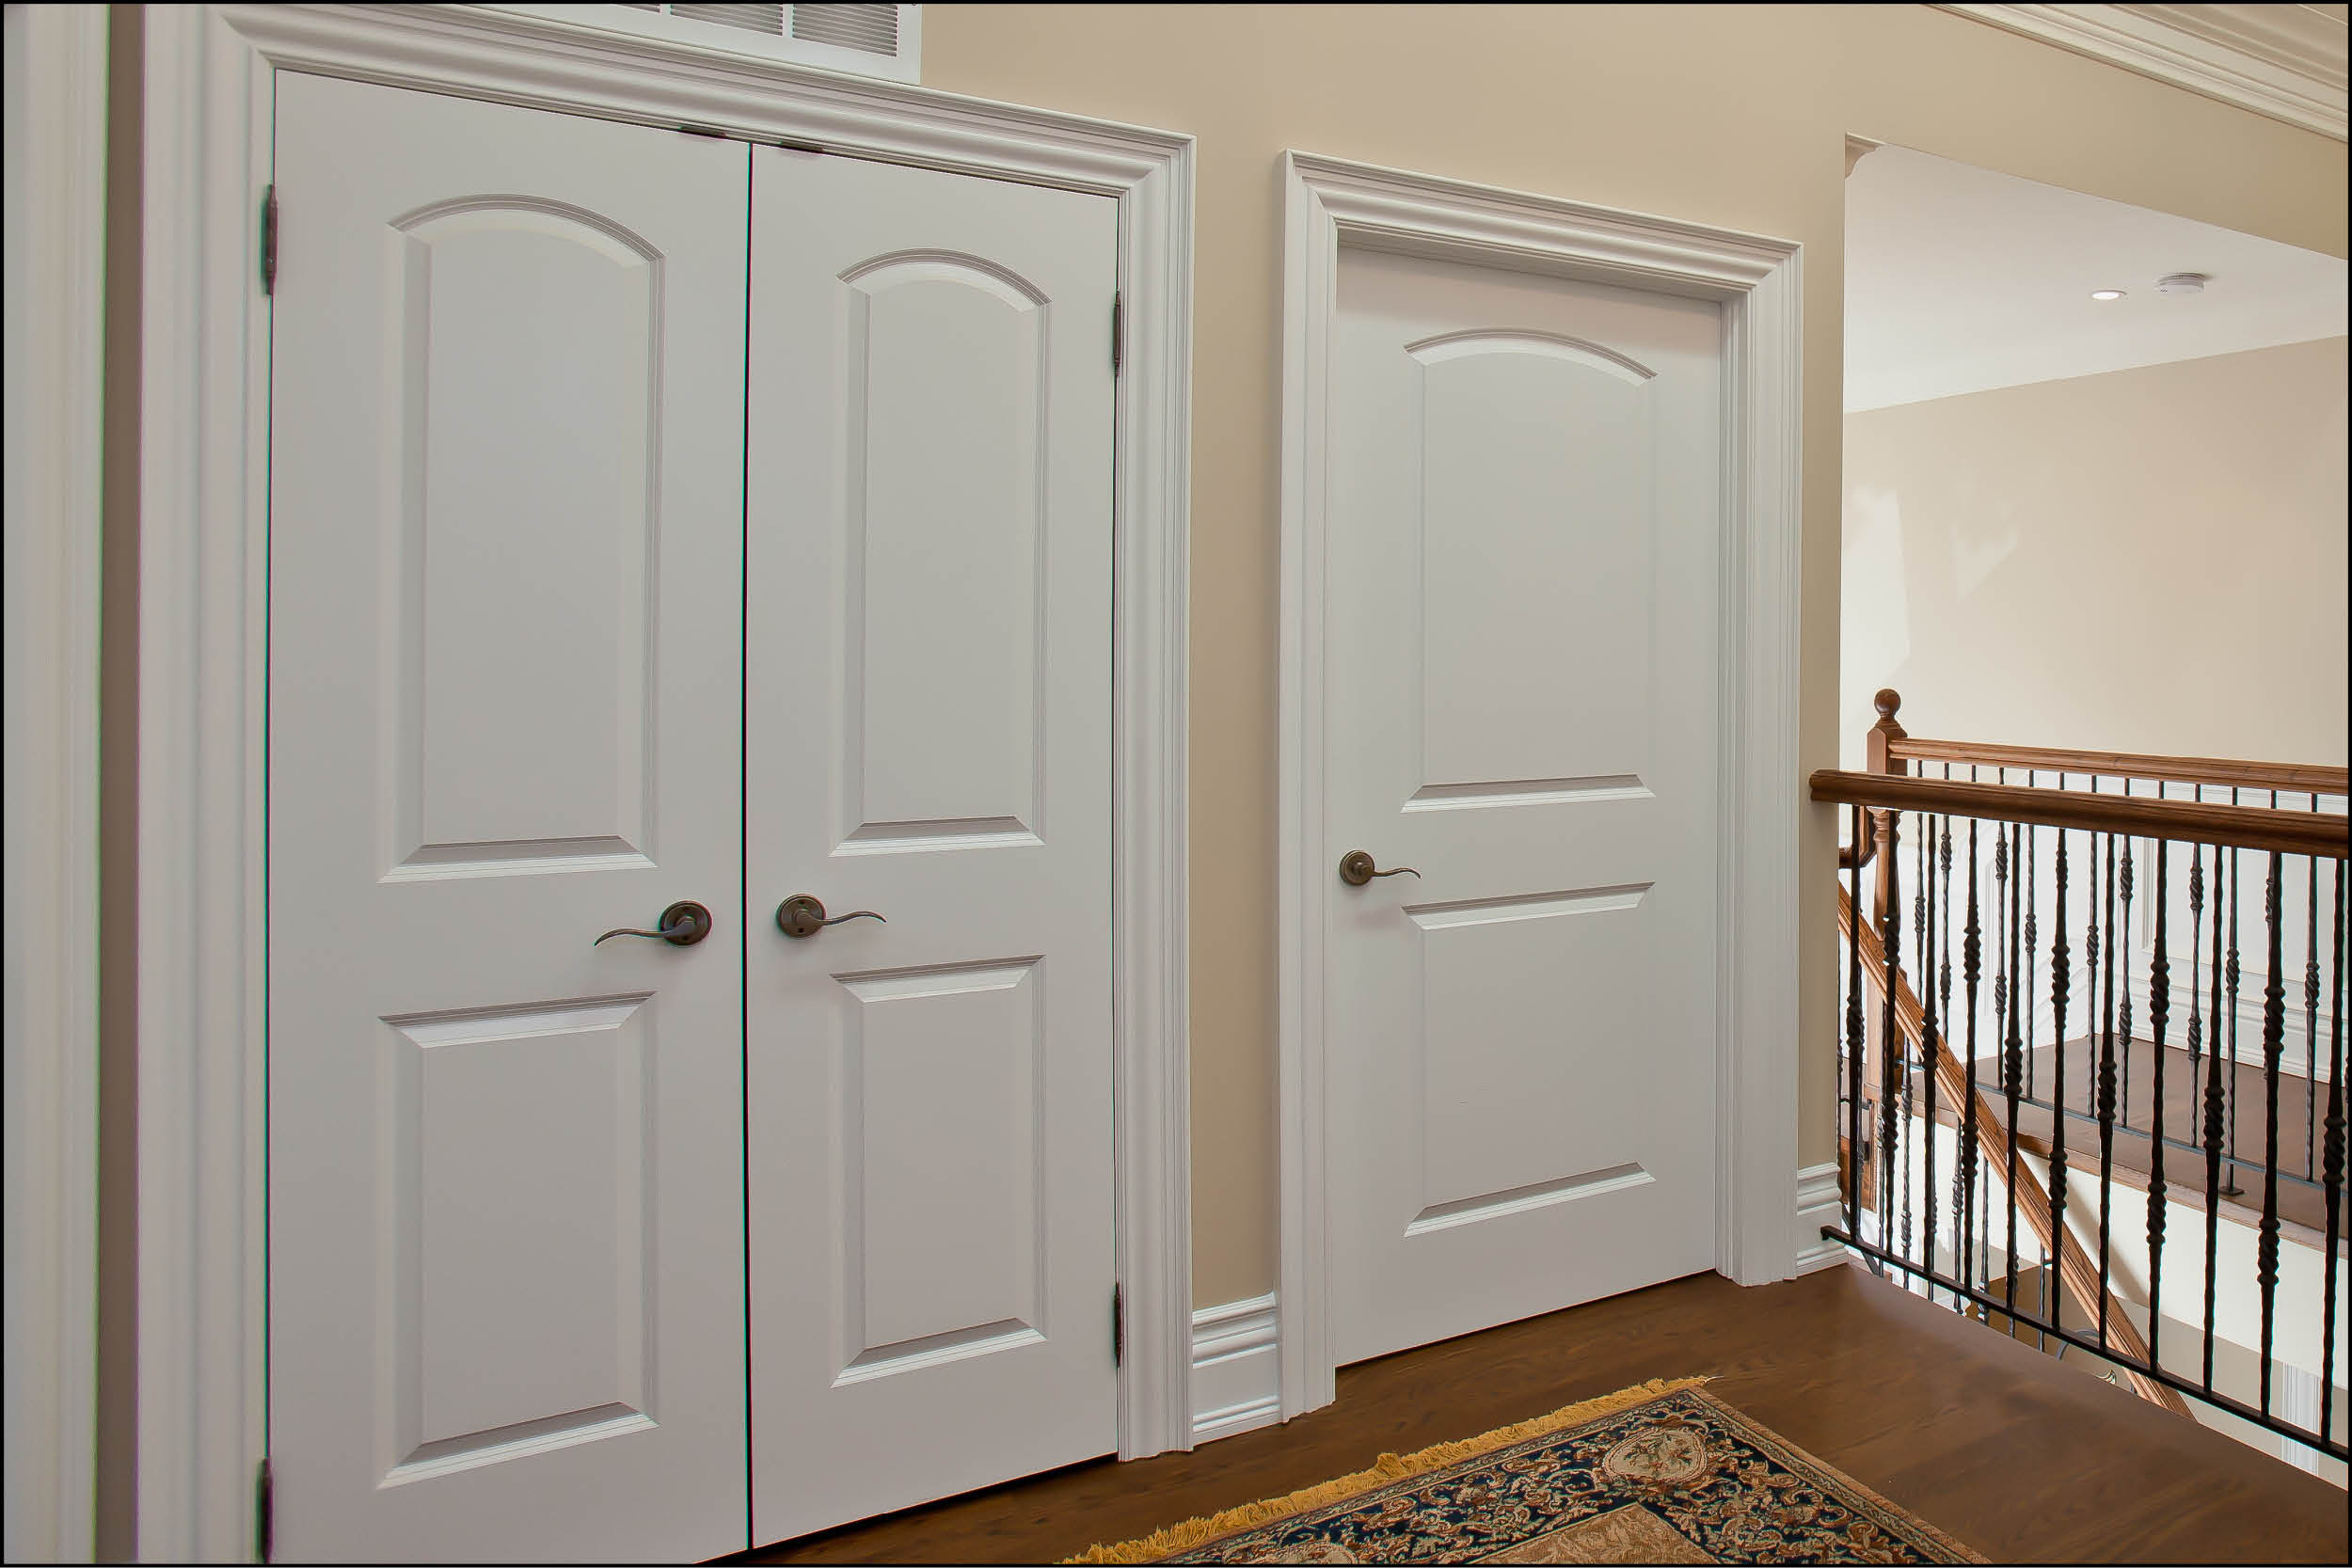 interior doors roscoe il kobyco replacement windows interior and exterior doors closet organizers and more serving rockford il and surrounding areas - Interior Doors